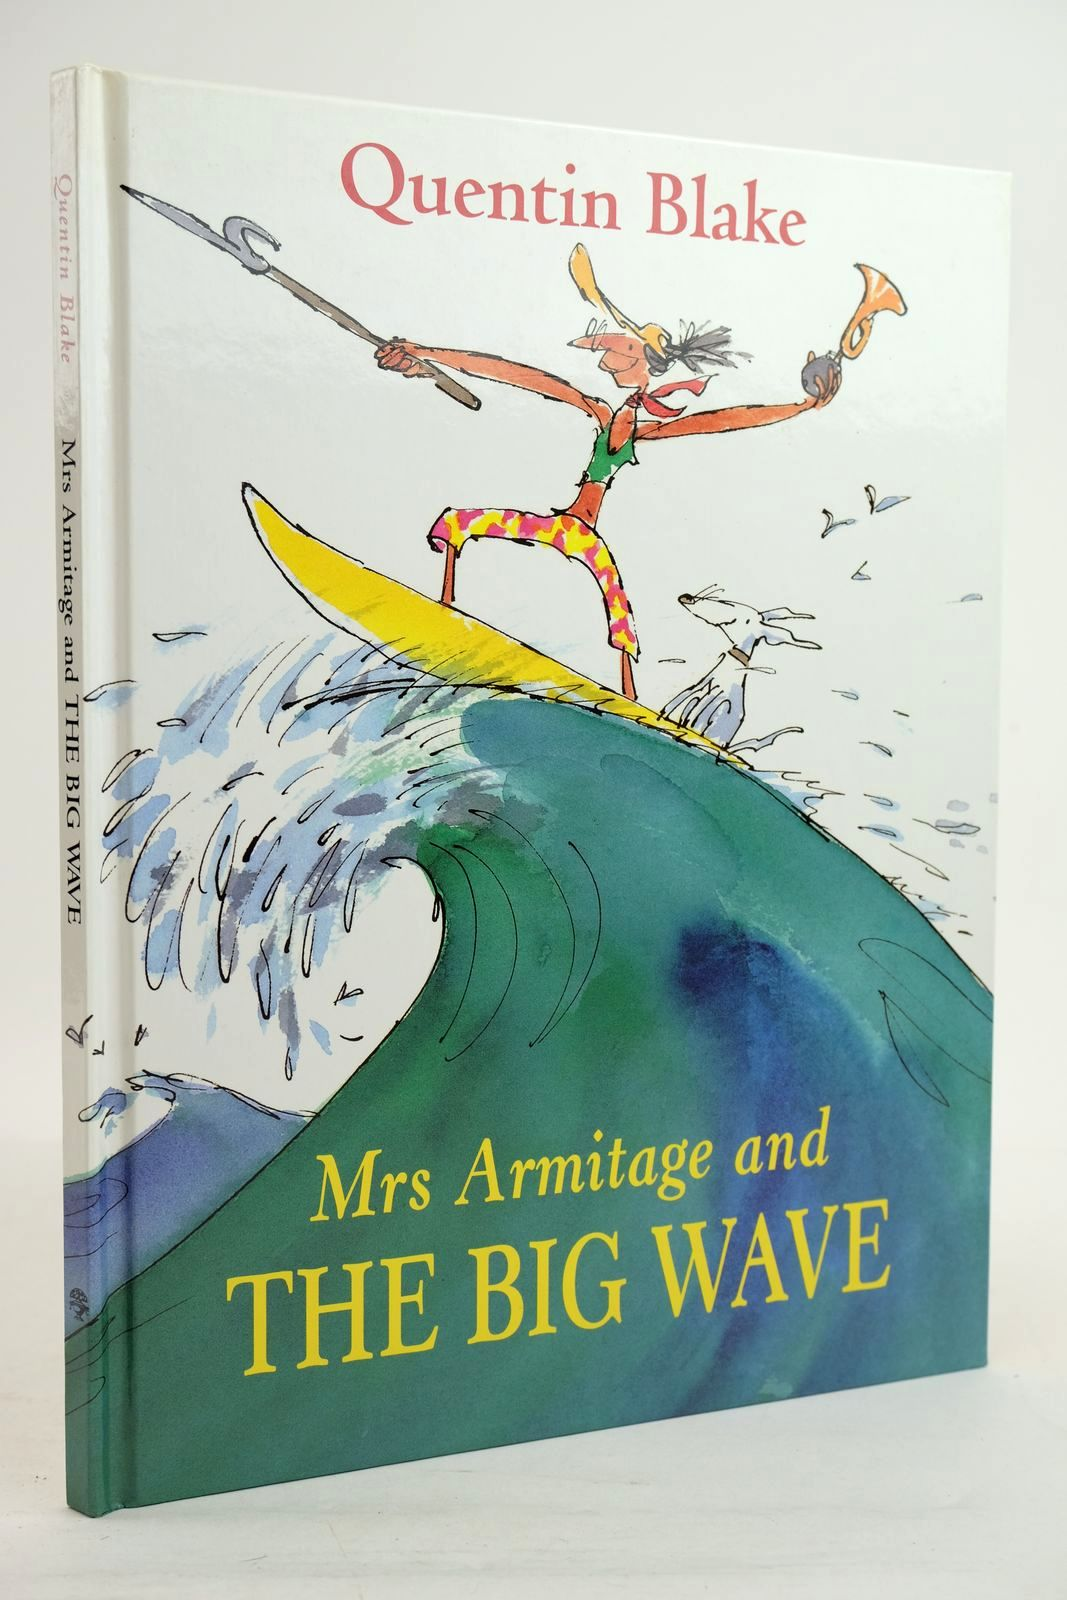 Photo of MRS ARMITAGE AND THE BIG WAVE written by Blake, Quentin illustrated by Blake, Quentin published by Jonathan Cape (STOCK CODE: 1320430)  for sale by Stella & Rose's Books